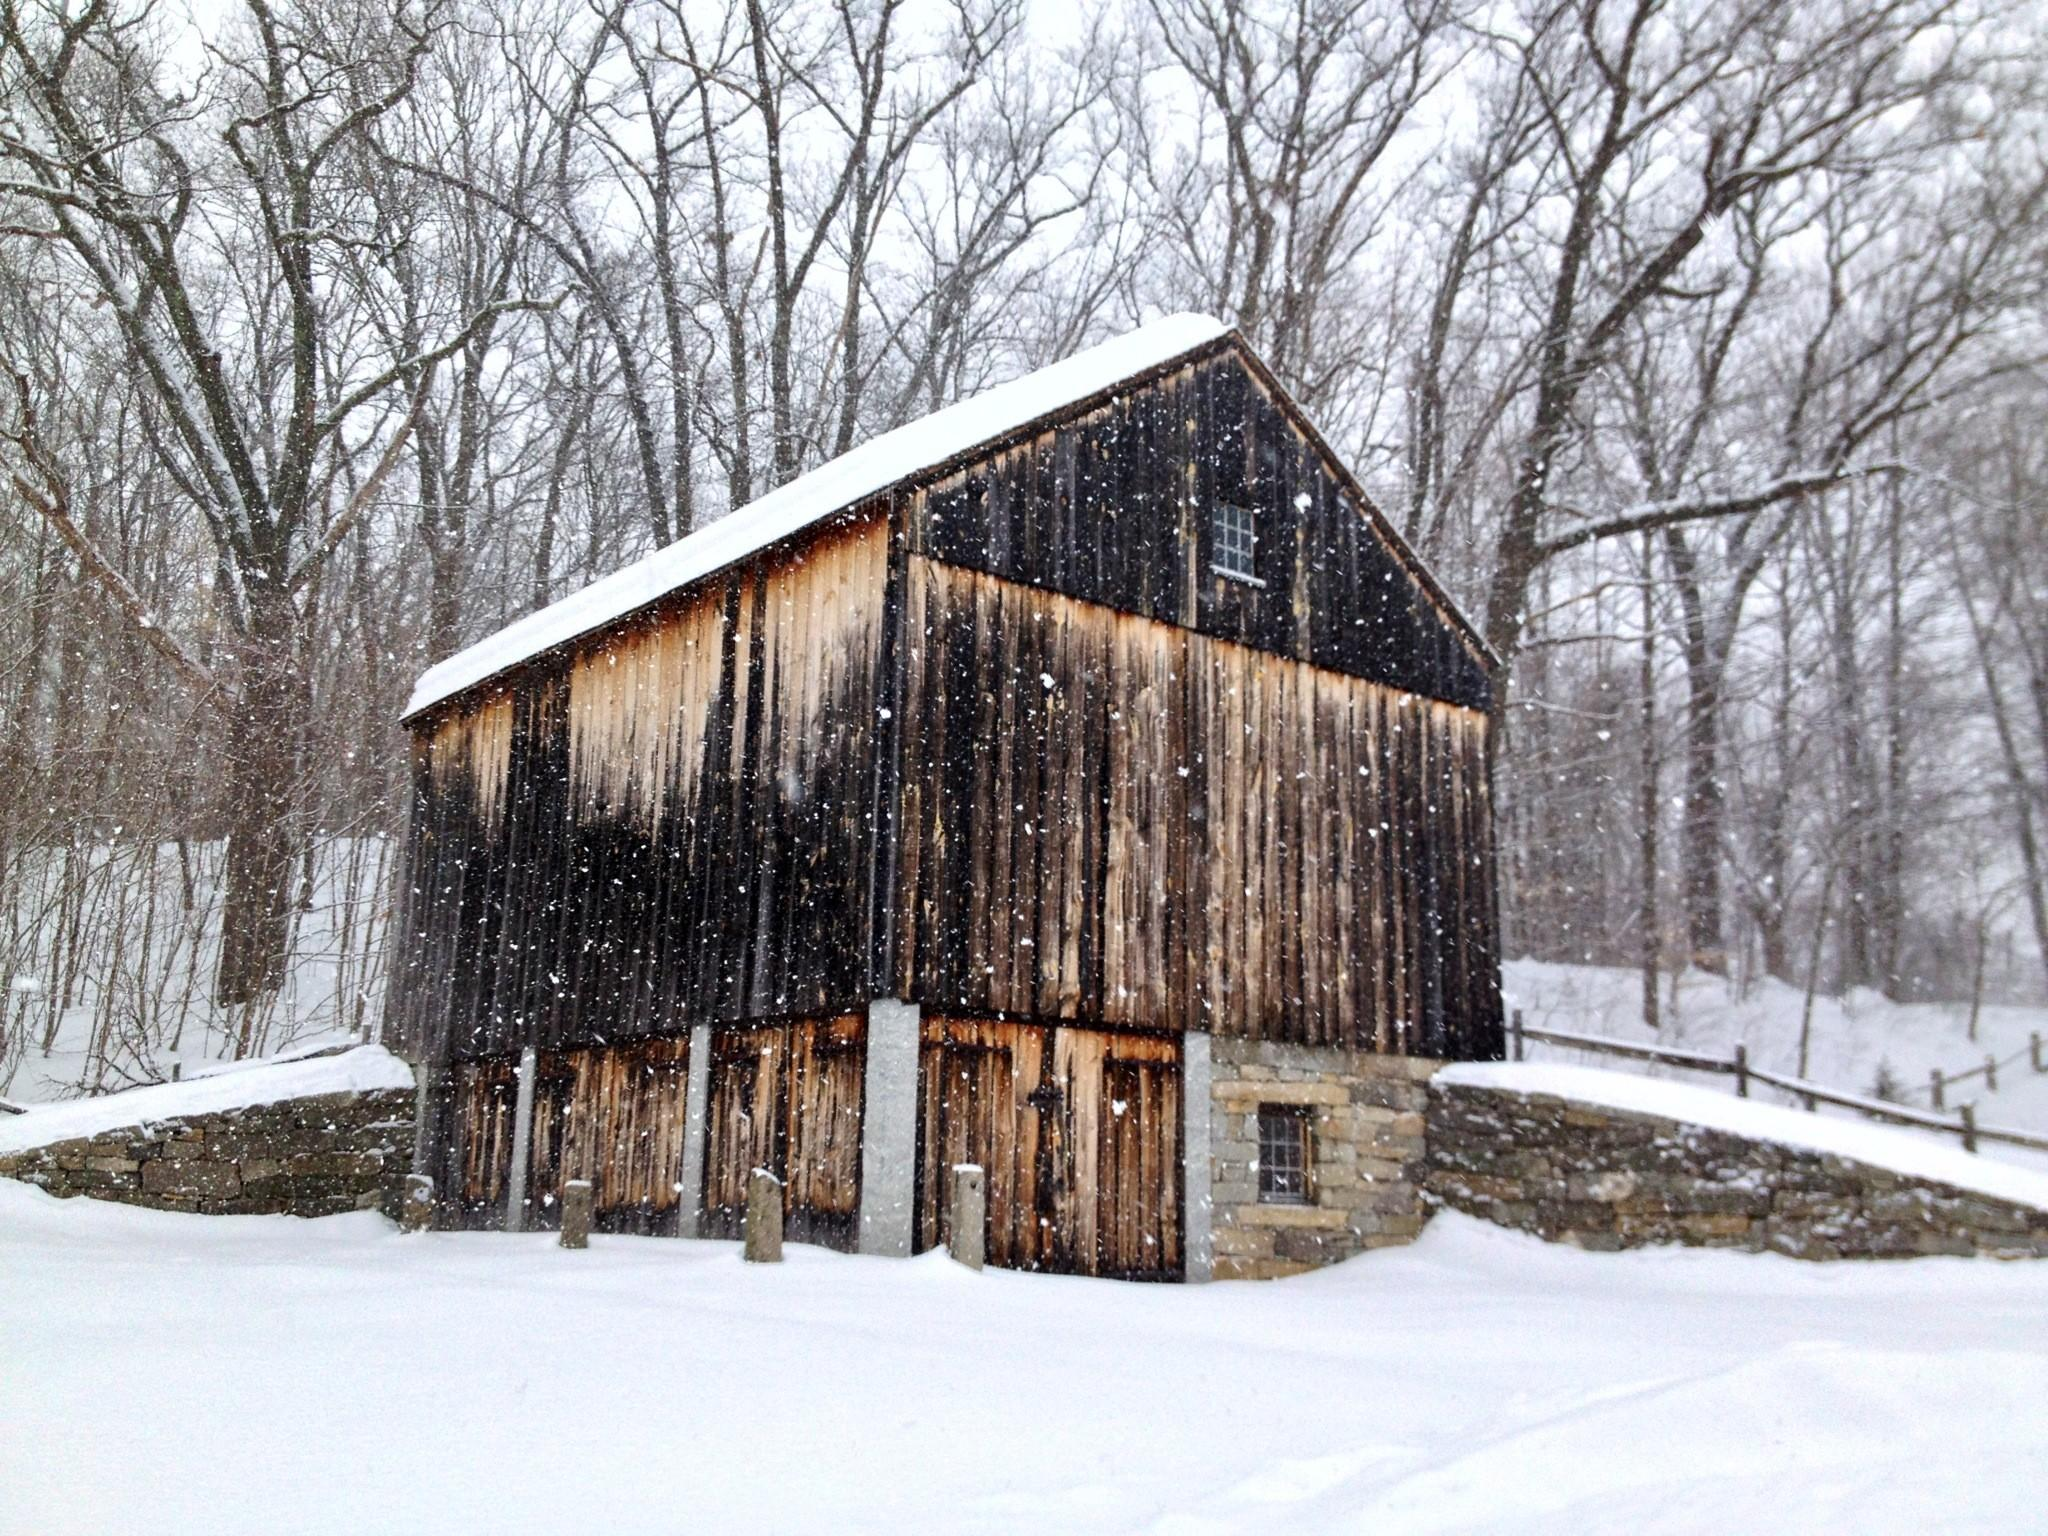 A barn on the grounds of the Welles Shipman Ward House in the snow.